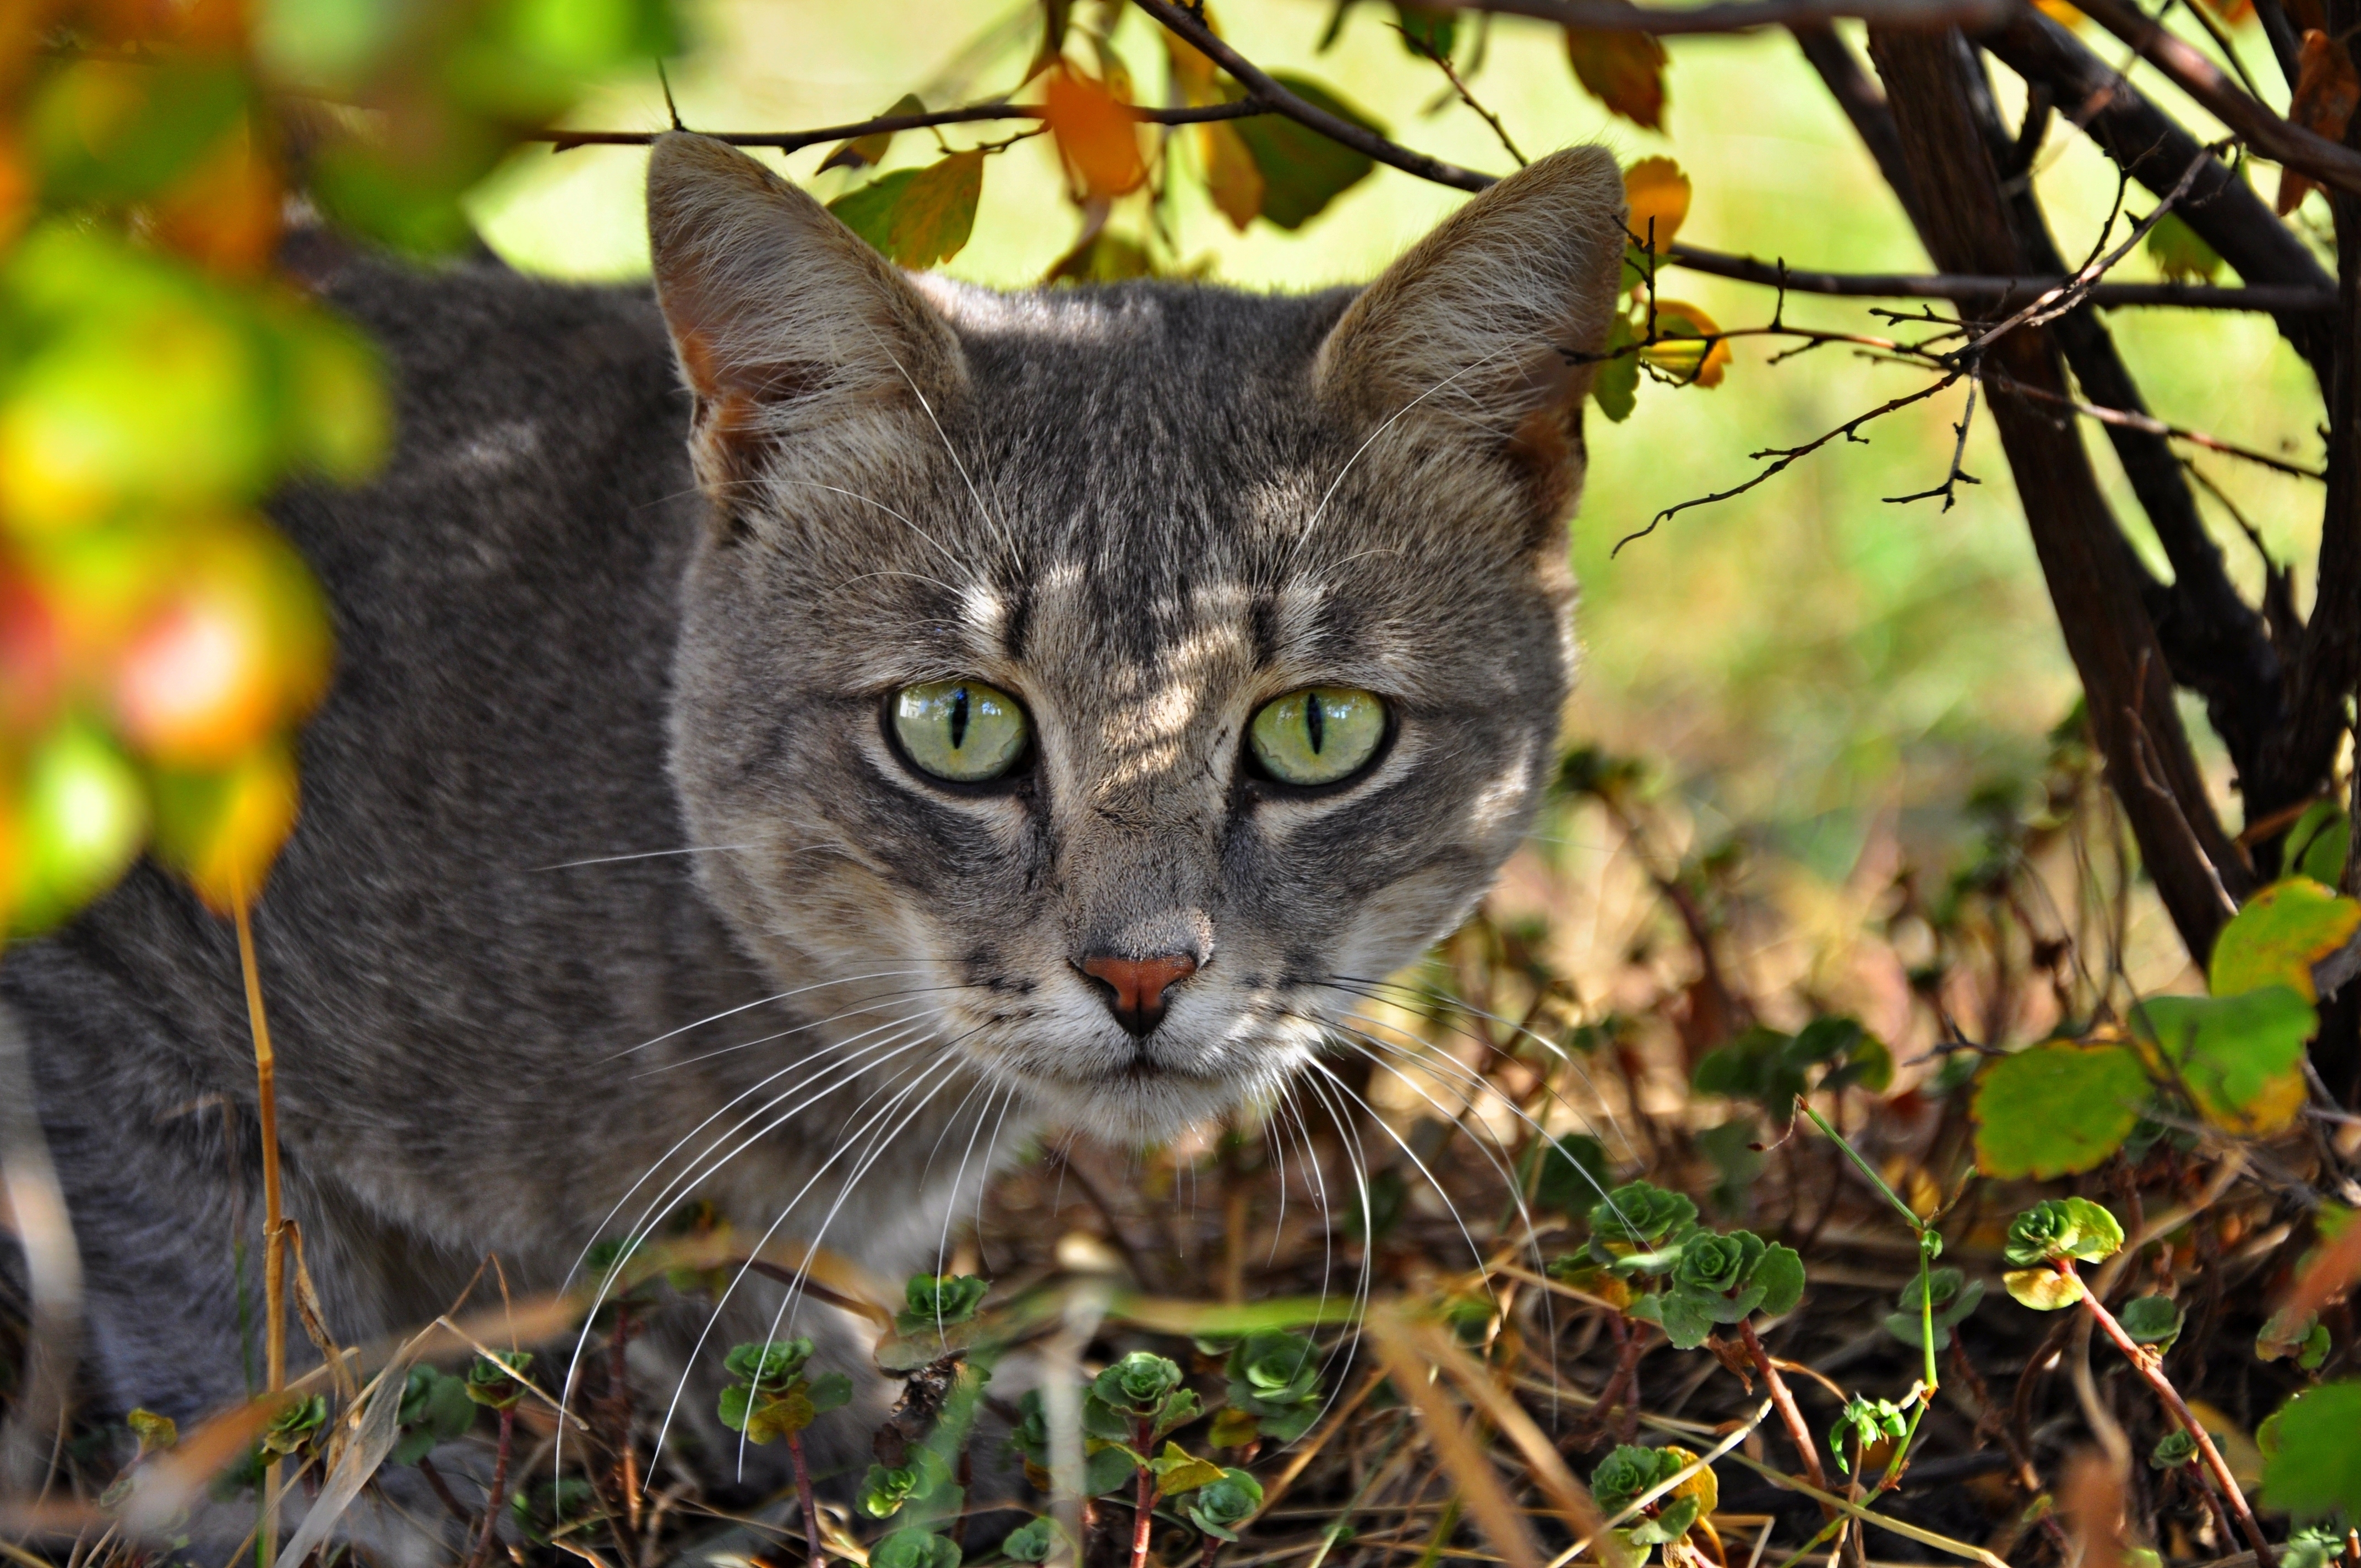 135141 download wallpaper Animals, Cat, Muzzle, Grass, Climb screensavers and pictures for free